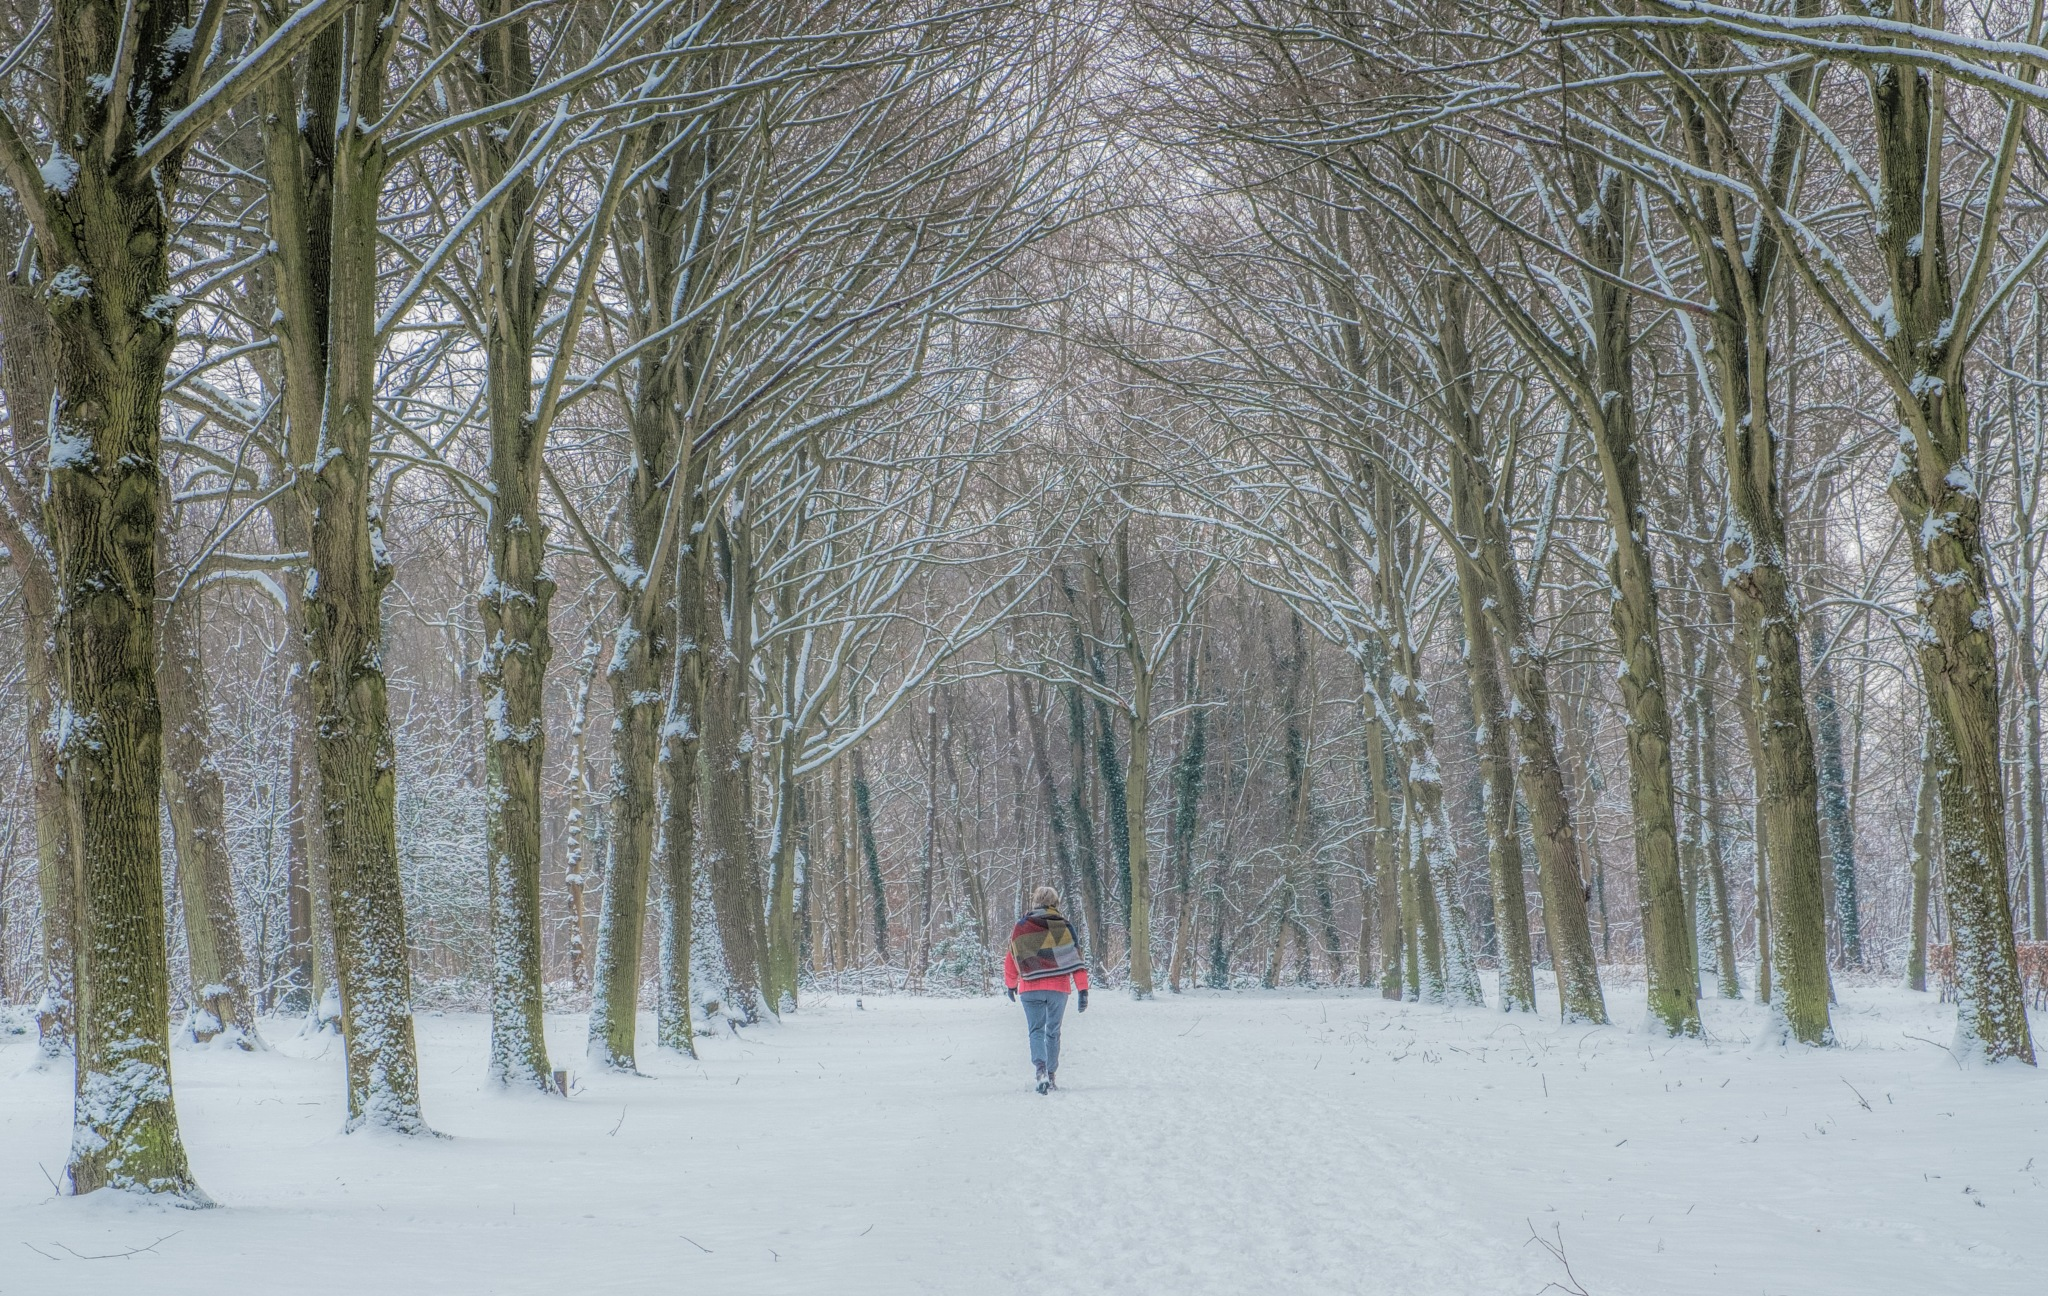 Lady in the snow by Henk Spijkerman